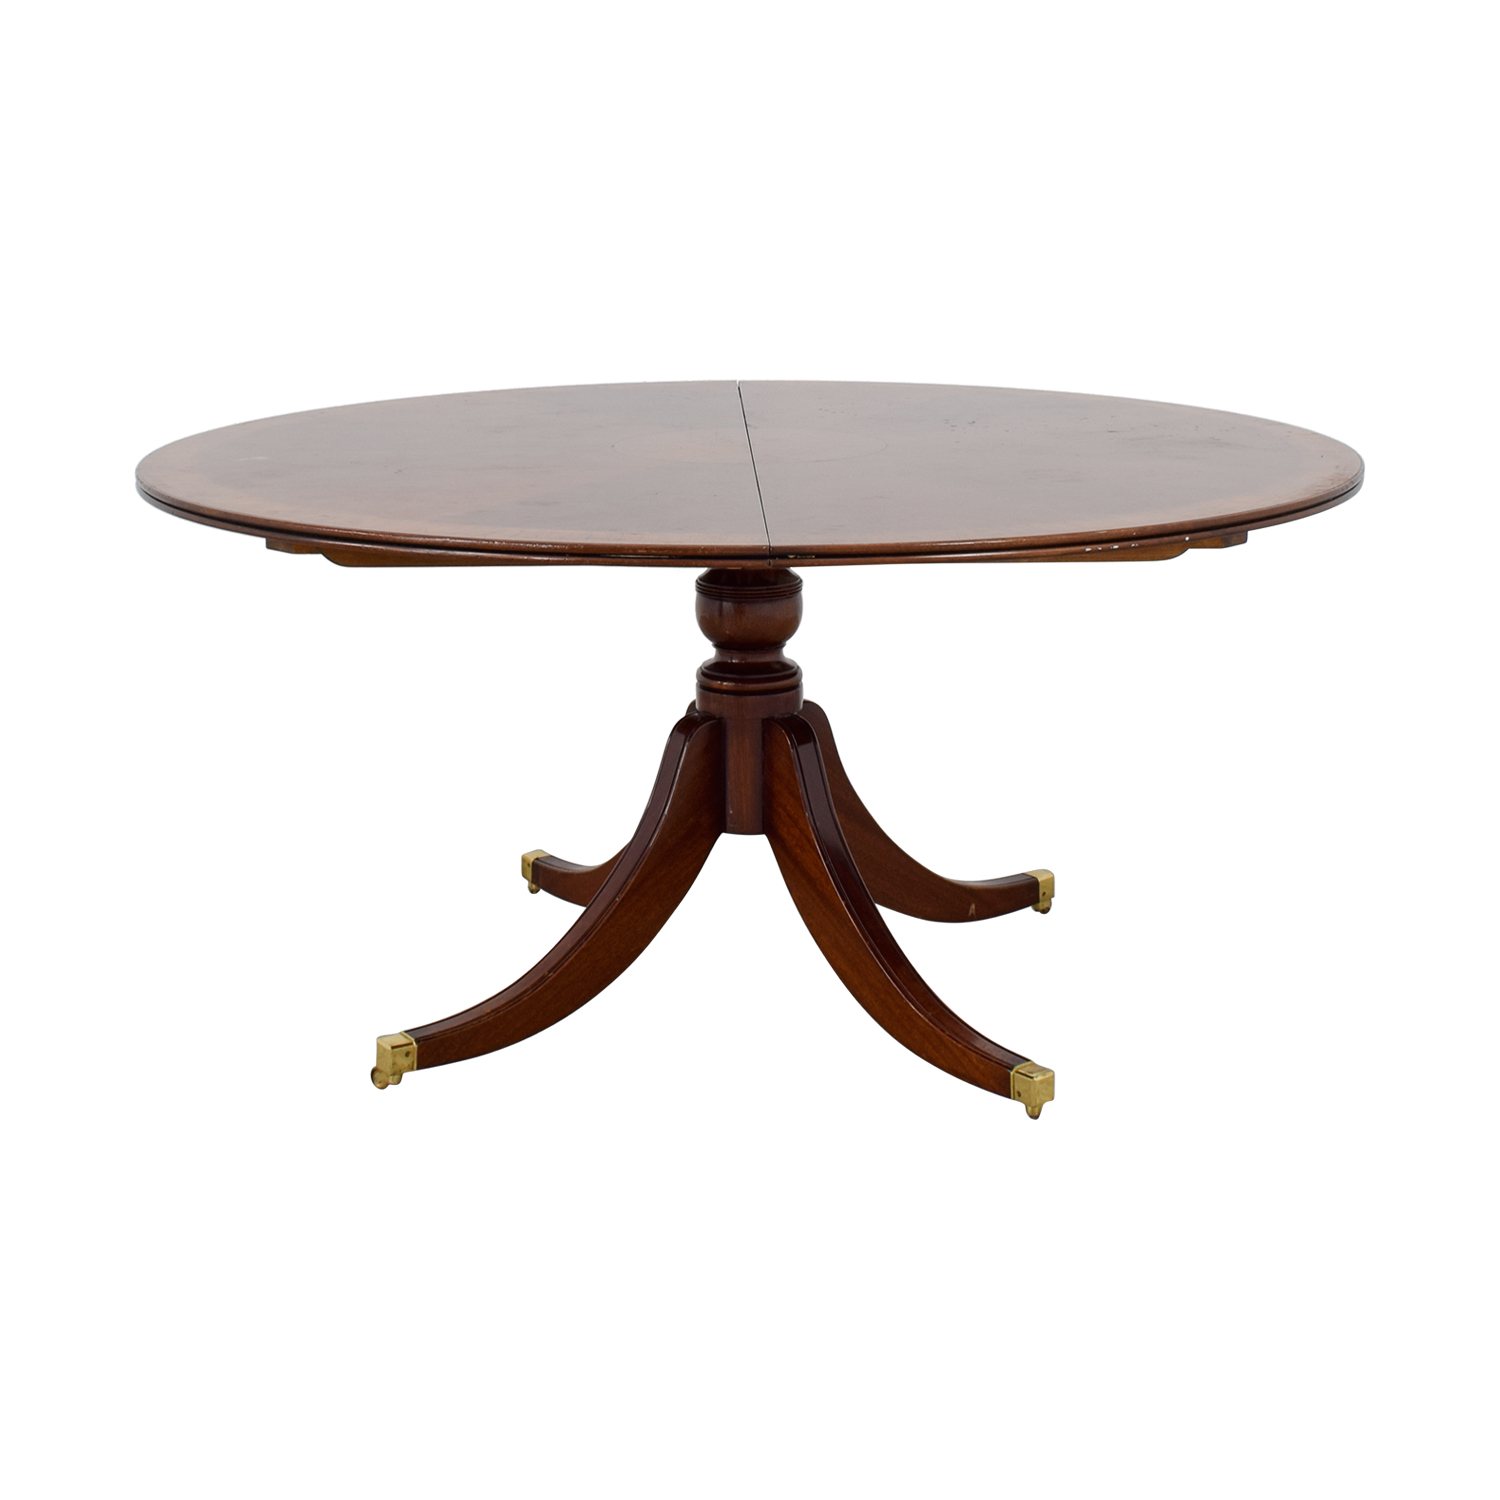 Round Dining Table With Extensions 90 Off Scully Scully Scully Scully Mahogany Round Dining